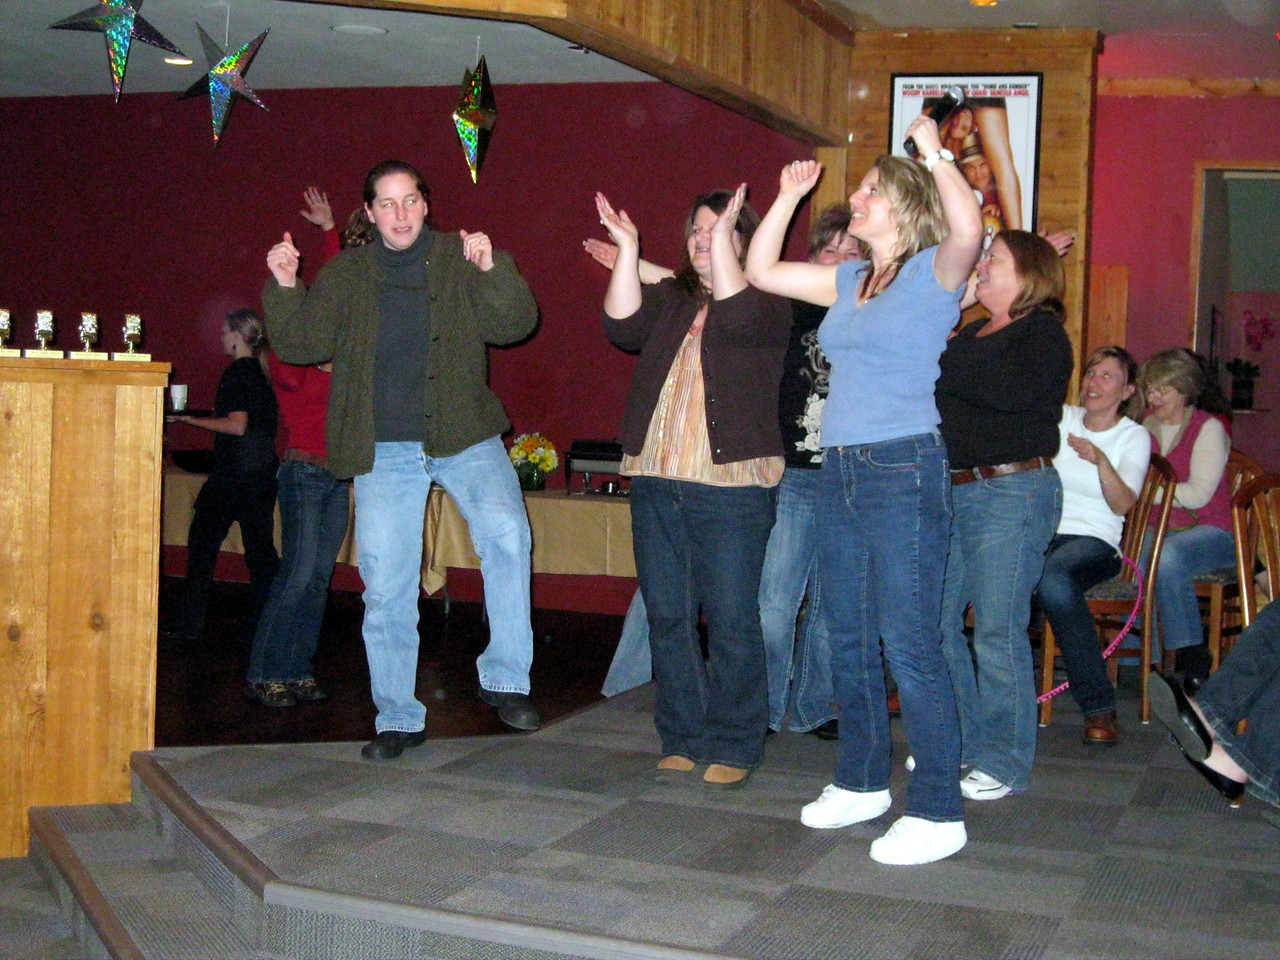 We even did the official YMCA dance moves.